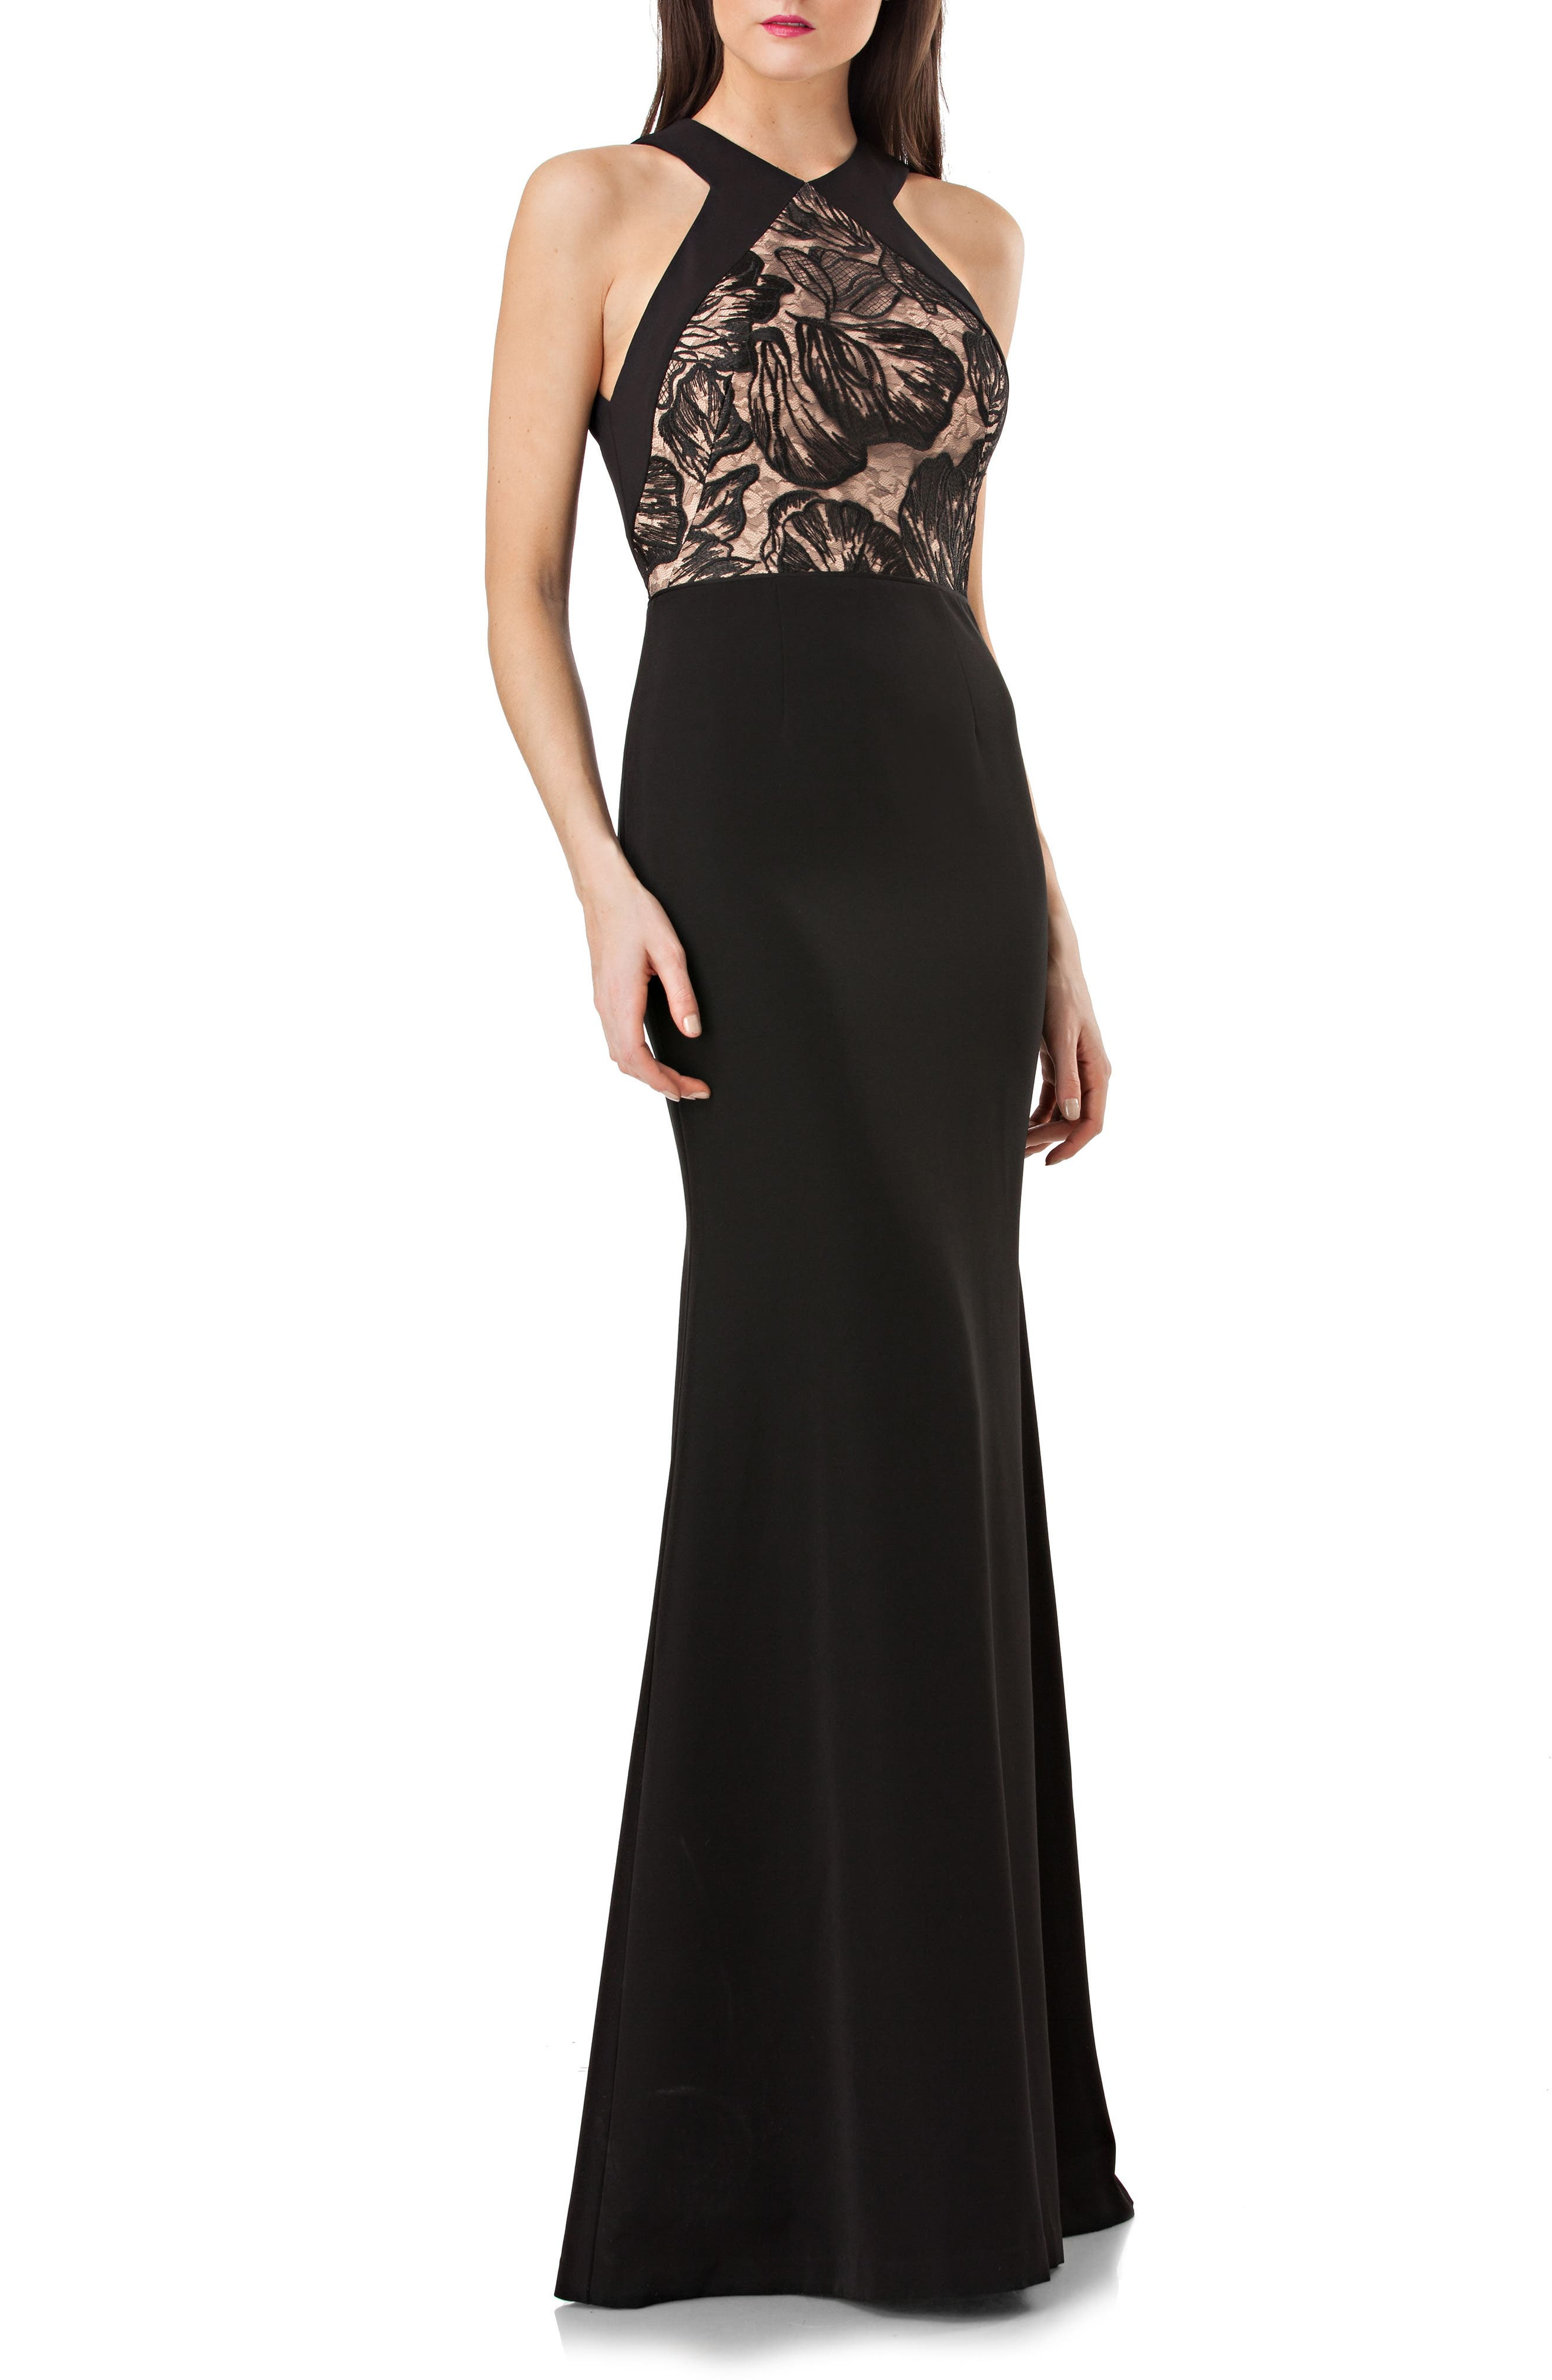 Main Image - JS Collection Lace Front Halter Mermaid Gown